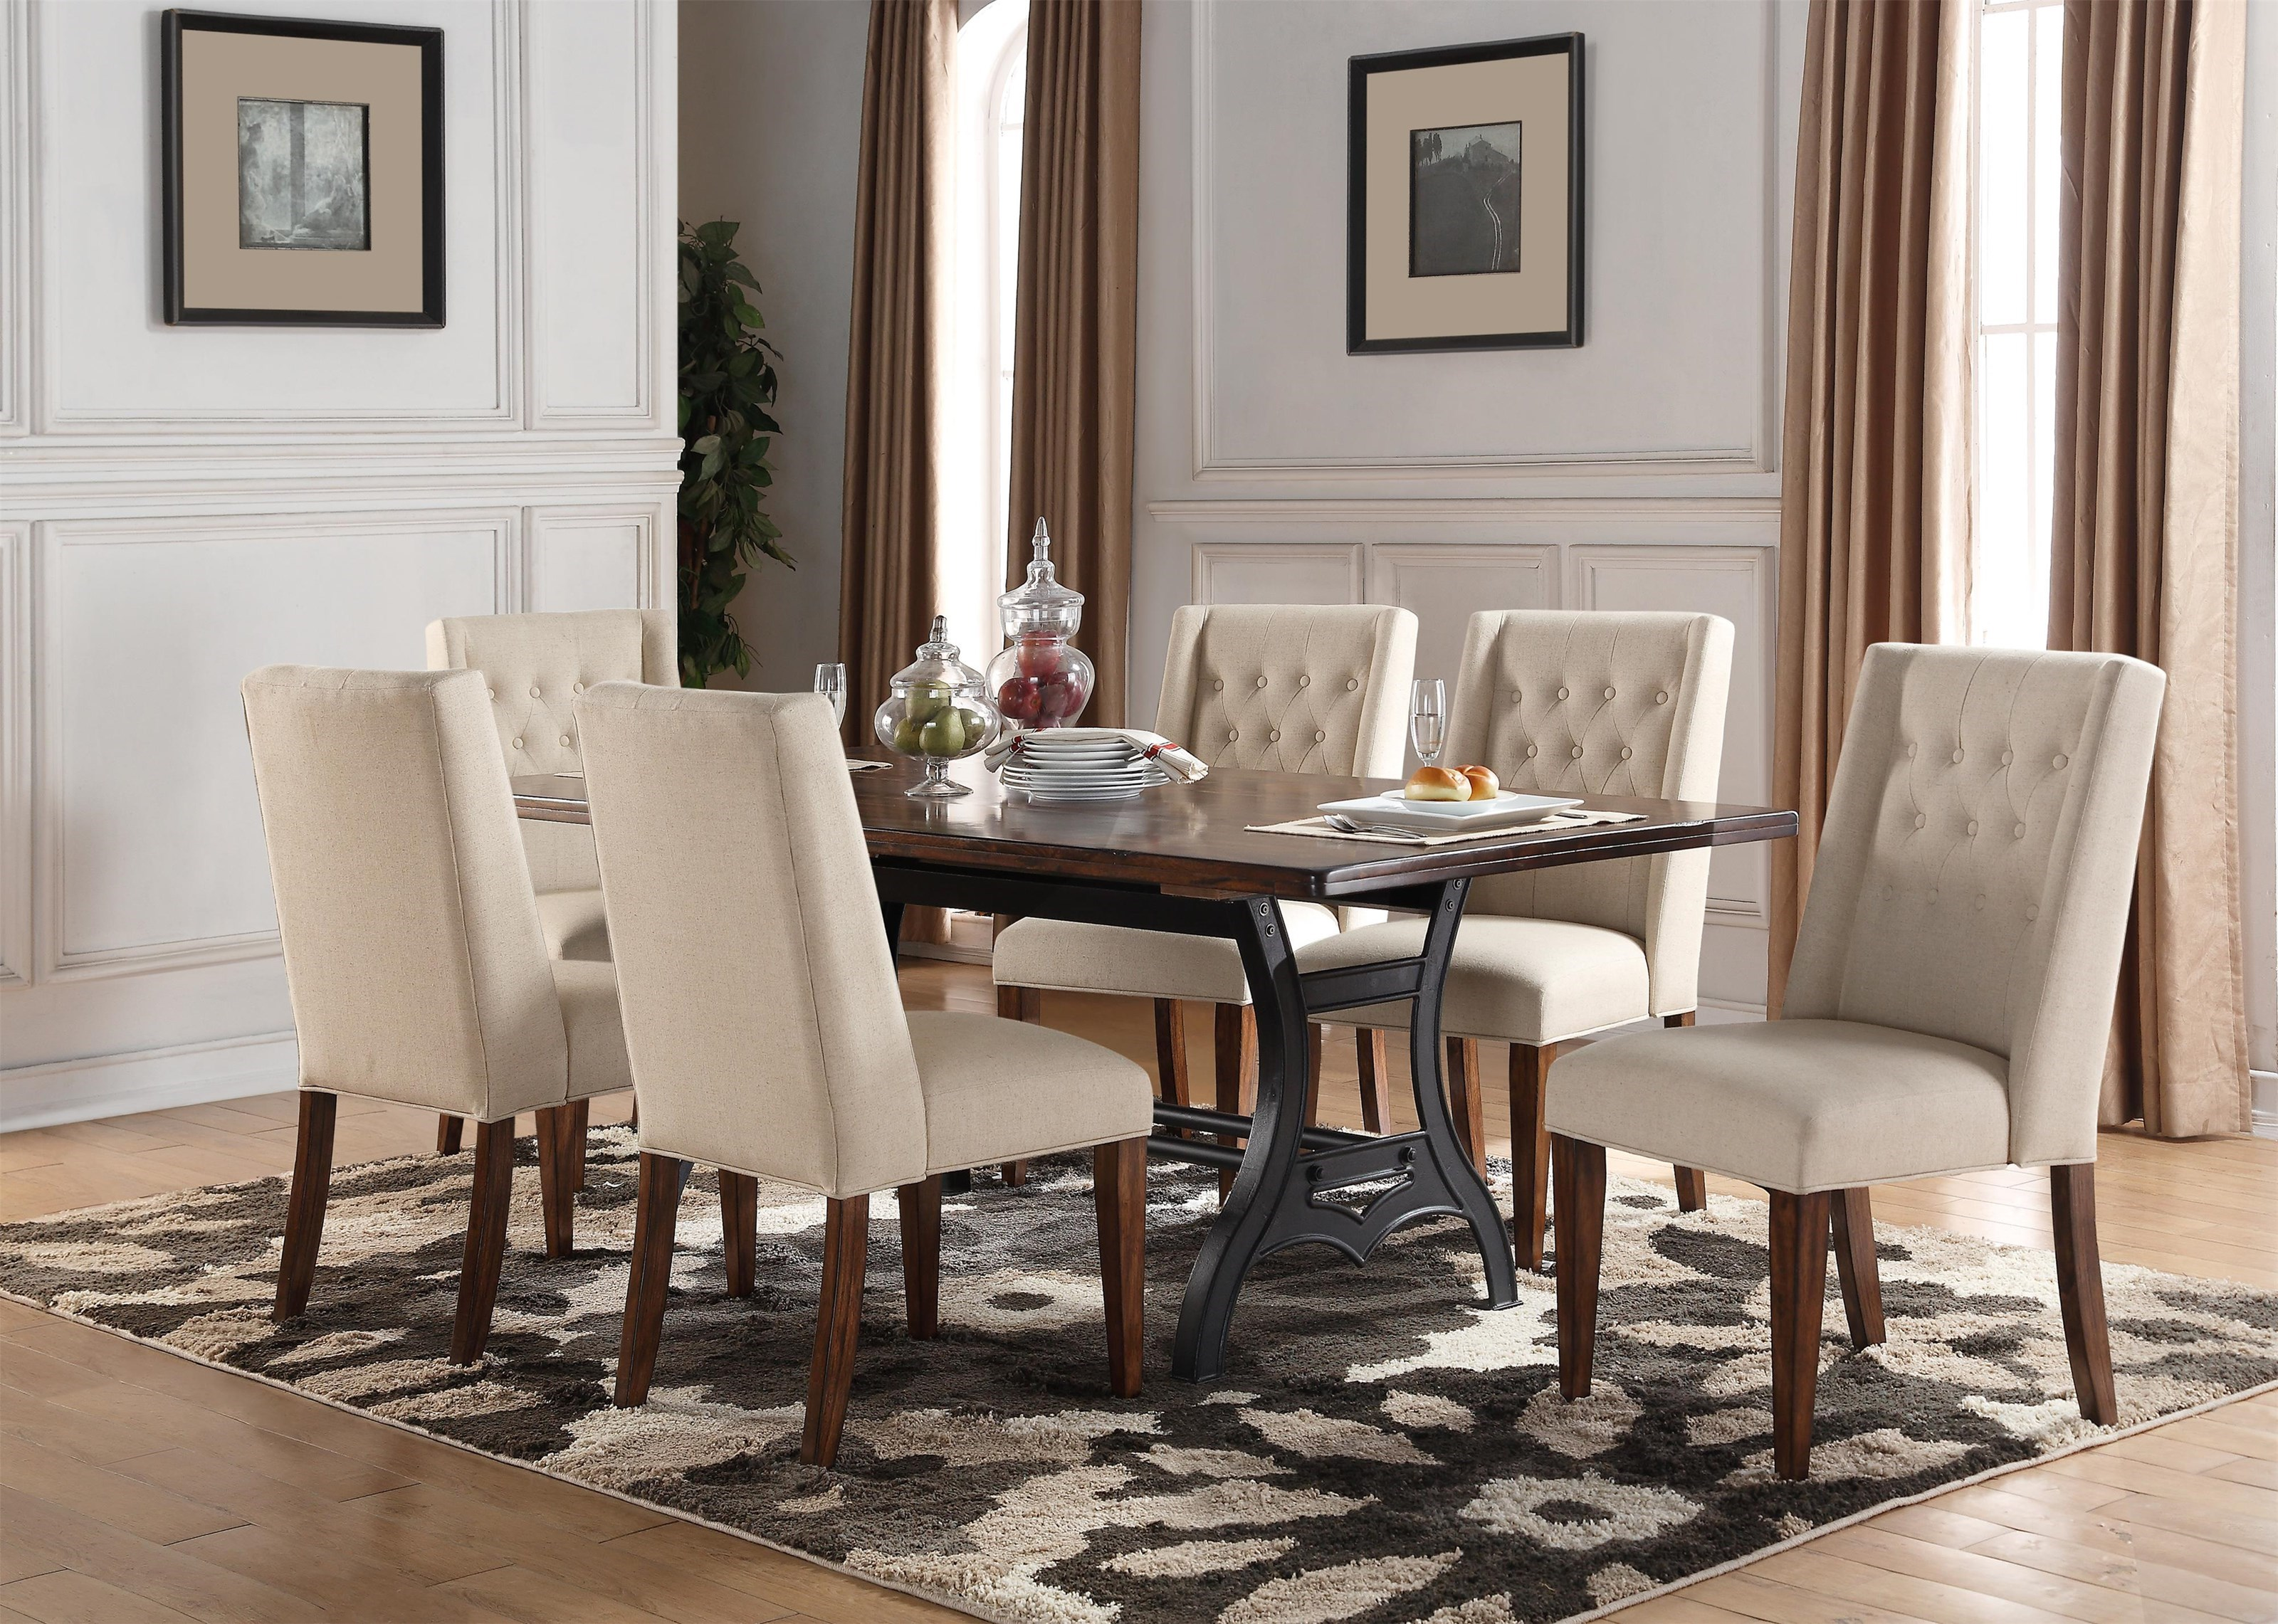 Creston 5 Piece Dining Set With 4 Button Tufted Chairs